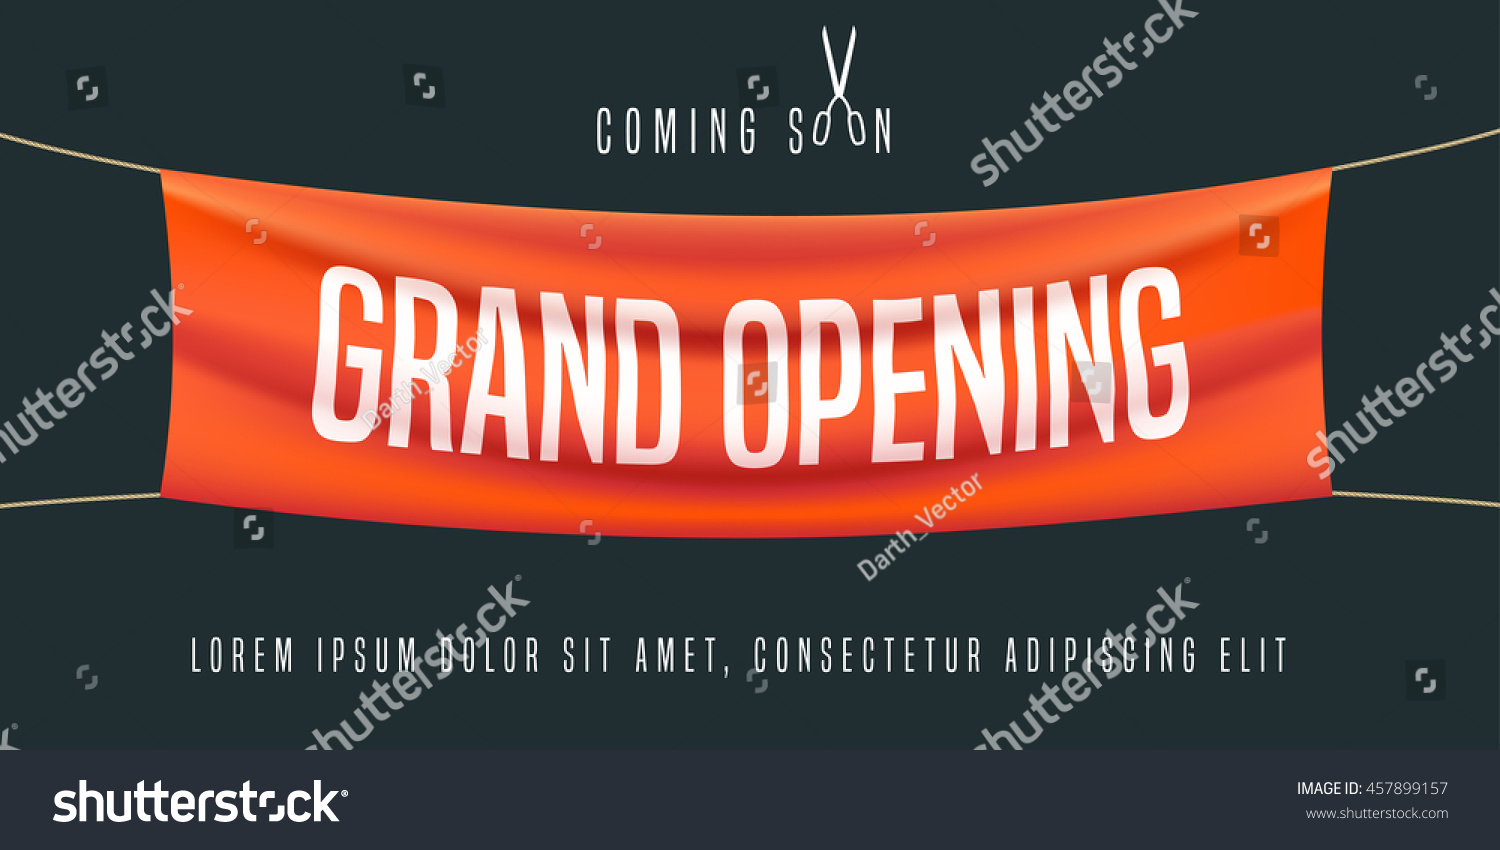 Grand Opening Vector Illustration Background New Stock Vector